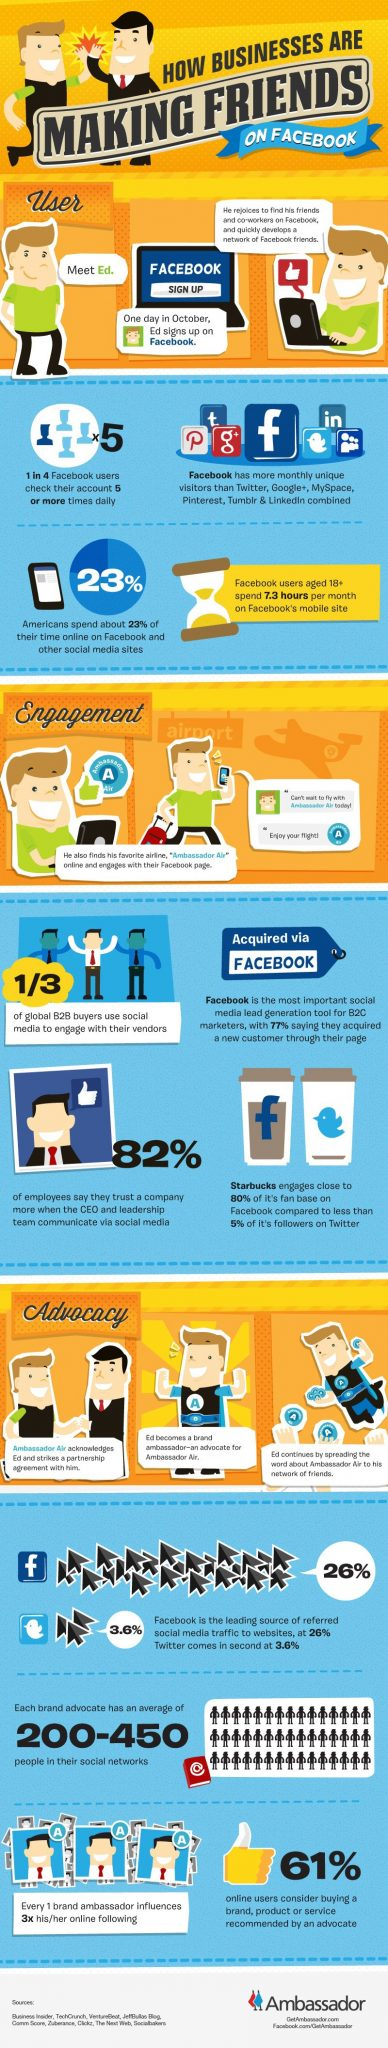 social media: making friends on facebook